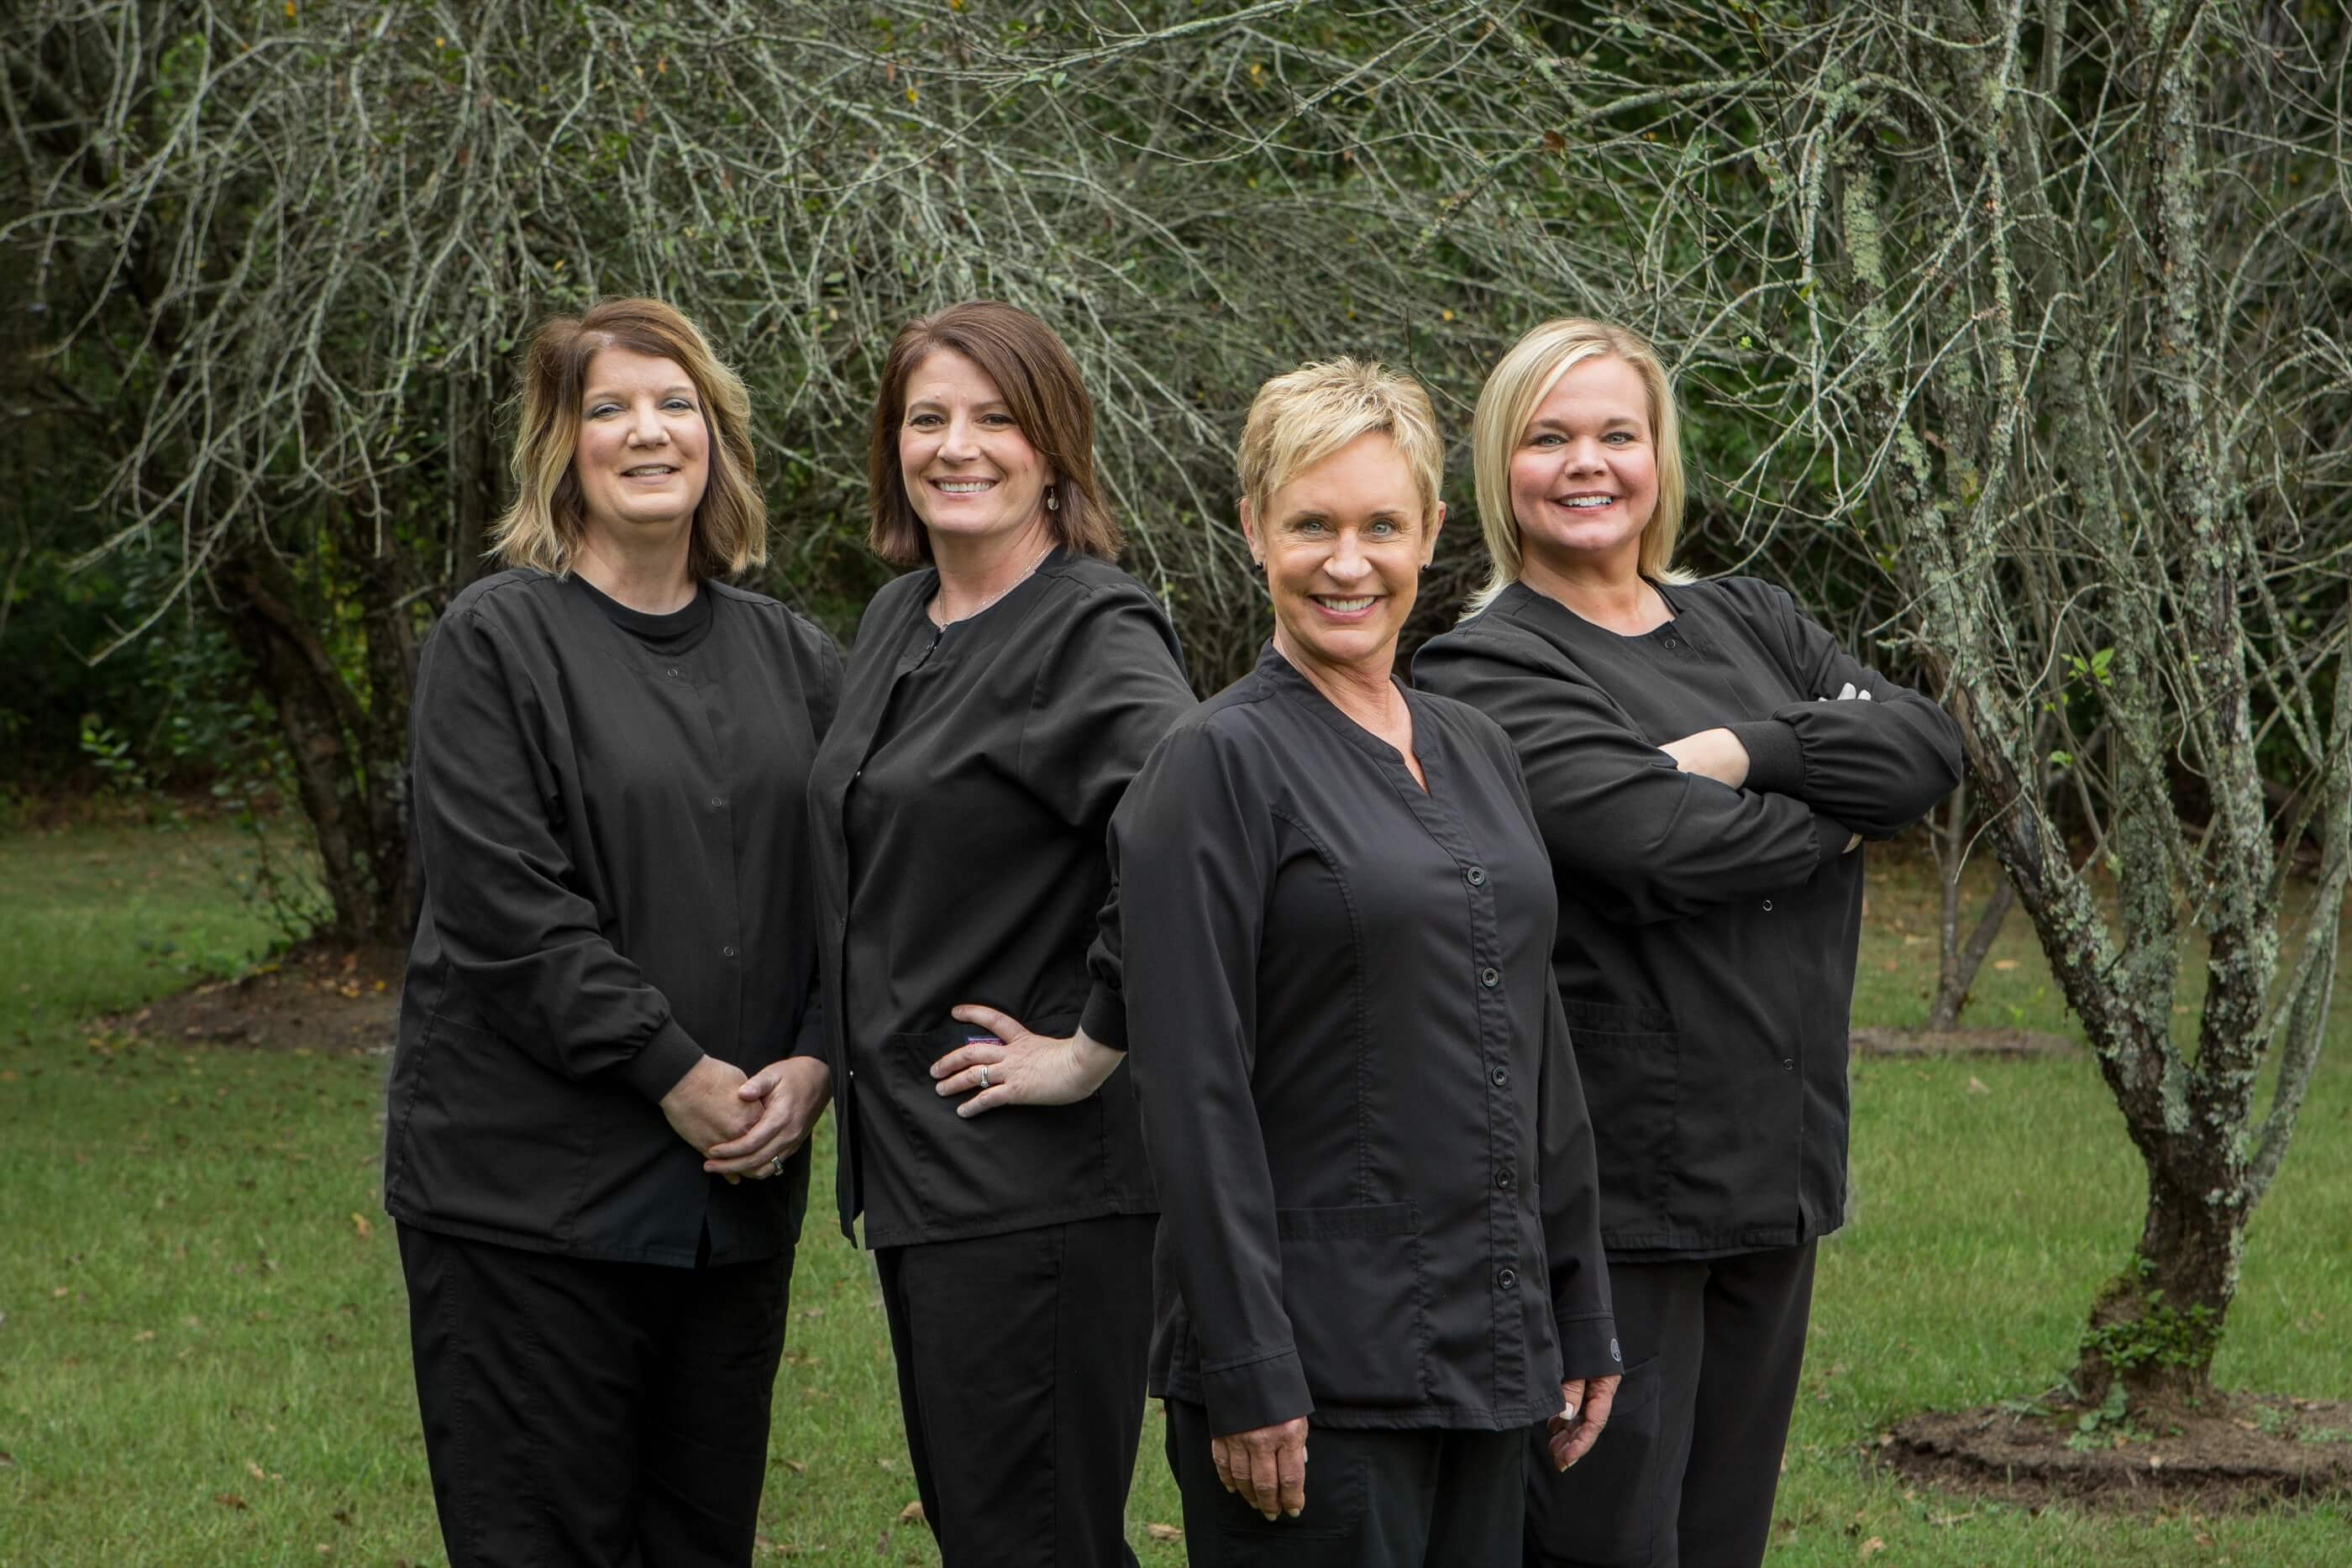 The Administrative Team of Baldwell and Guffey Family Dentistry Standing Together